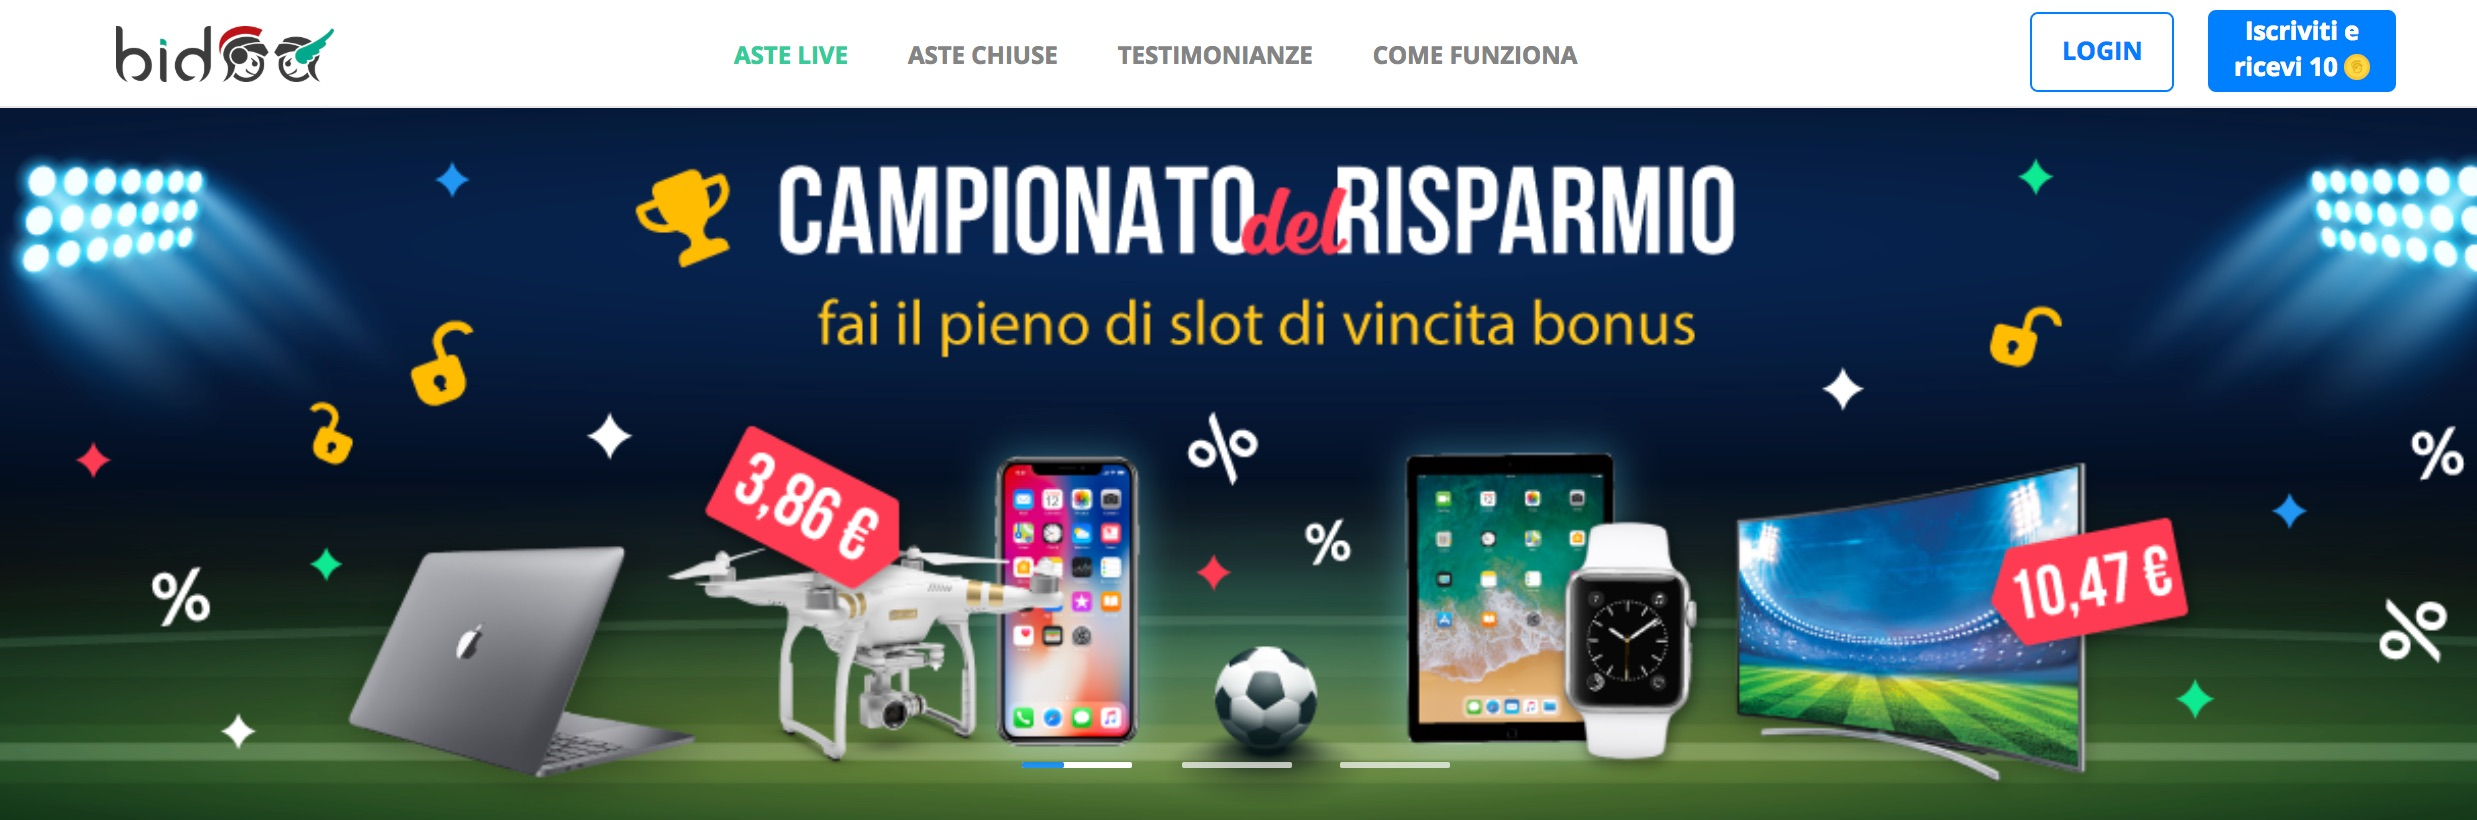 Come Guadagnare Online - 17 Metodi Efficaci - Final Design